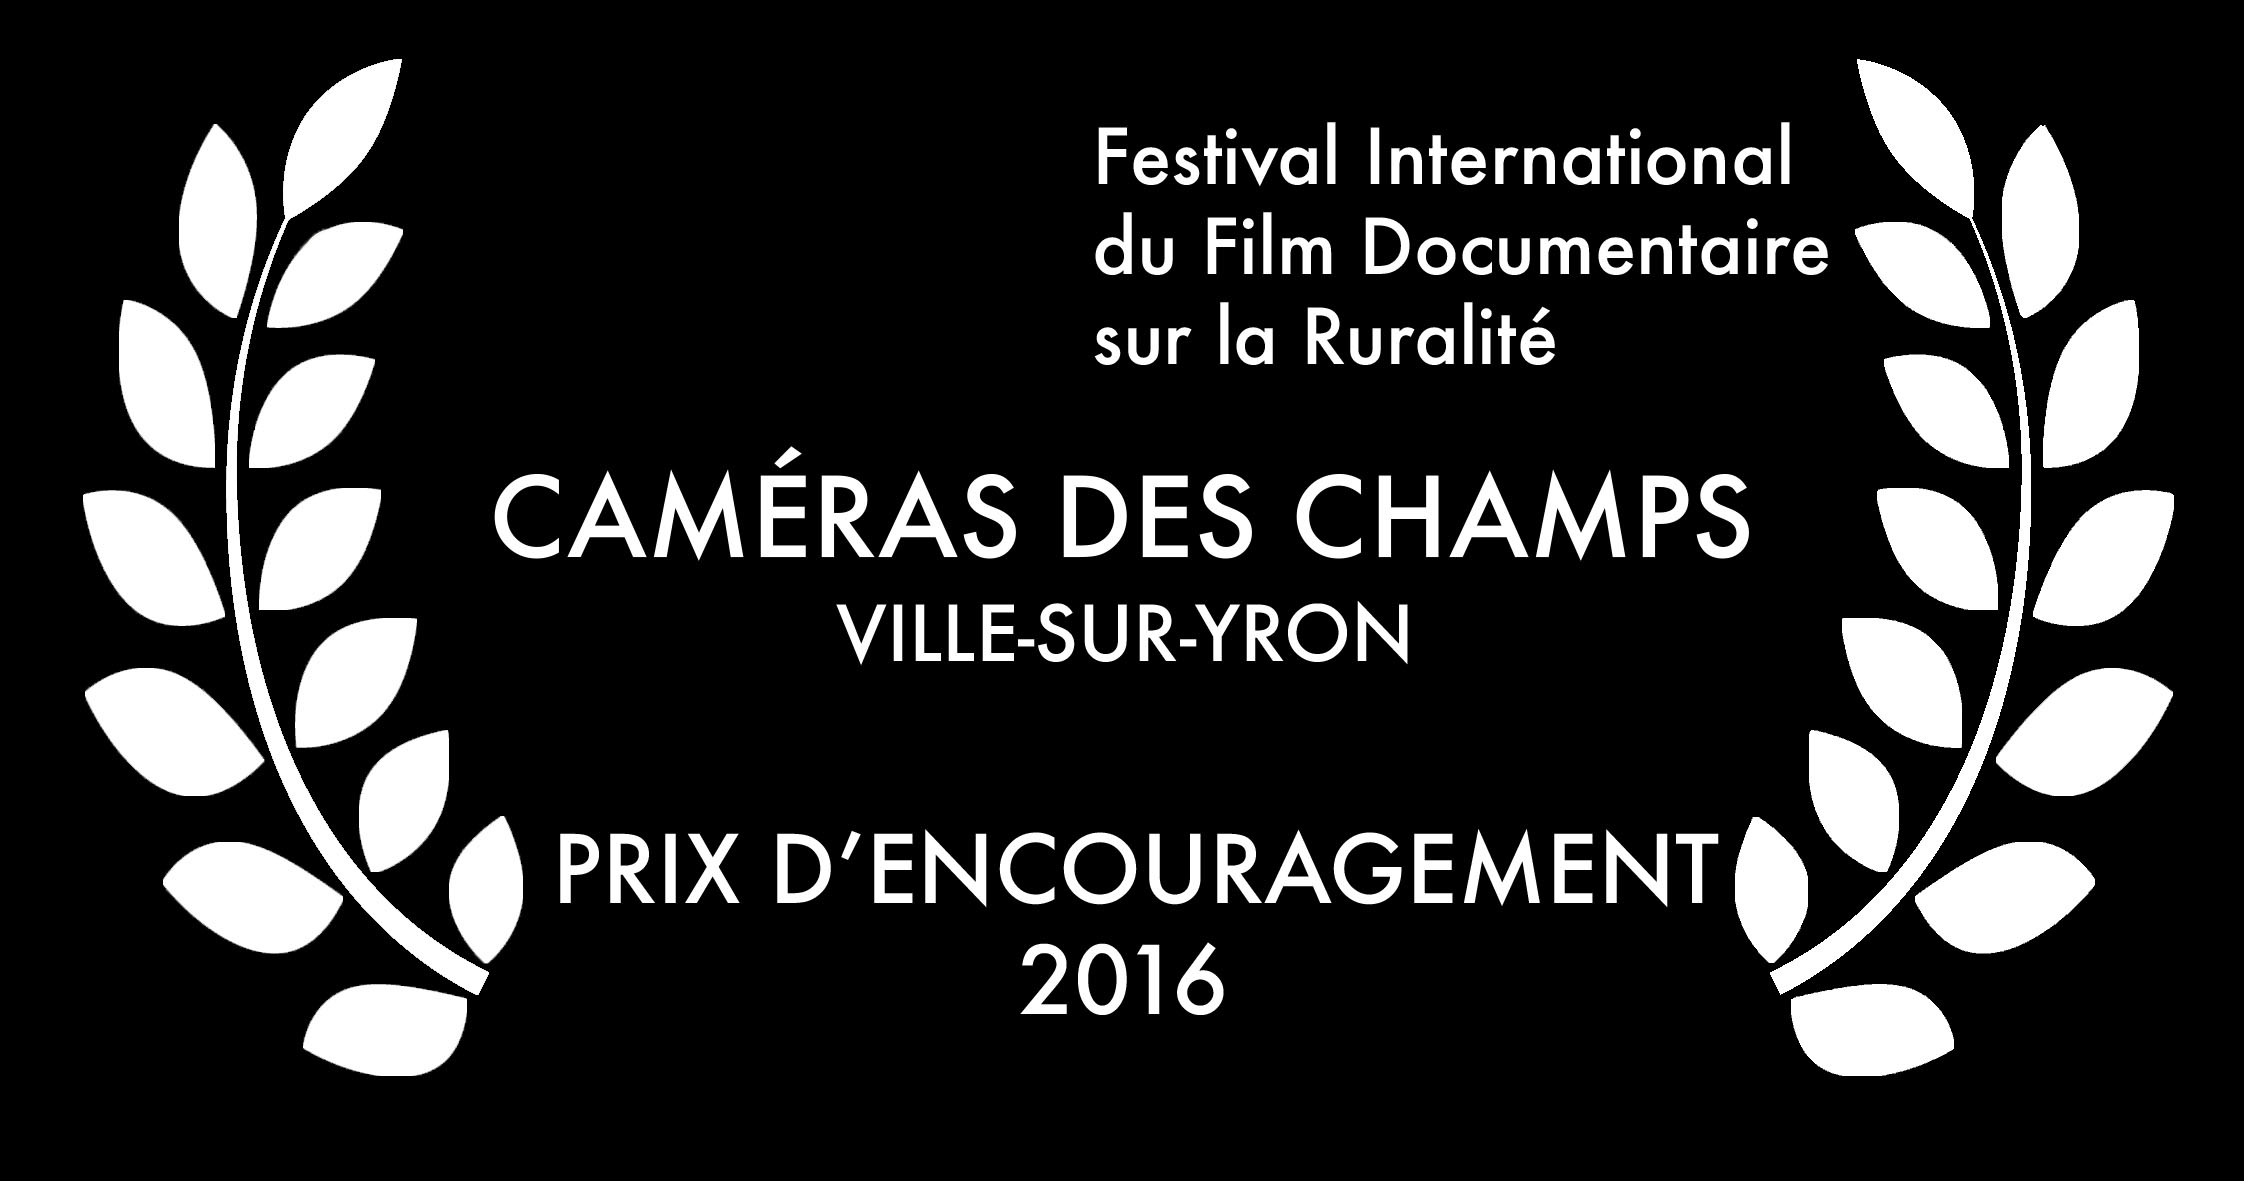 Festival International du Film Documentaire sur la Ruralité 2016 - Prix d'encouragement